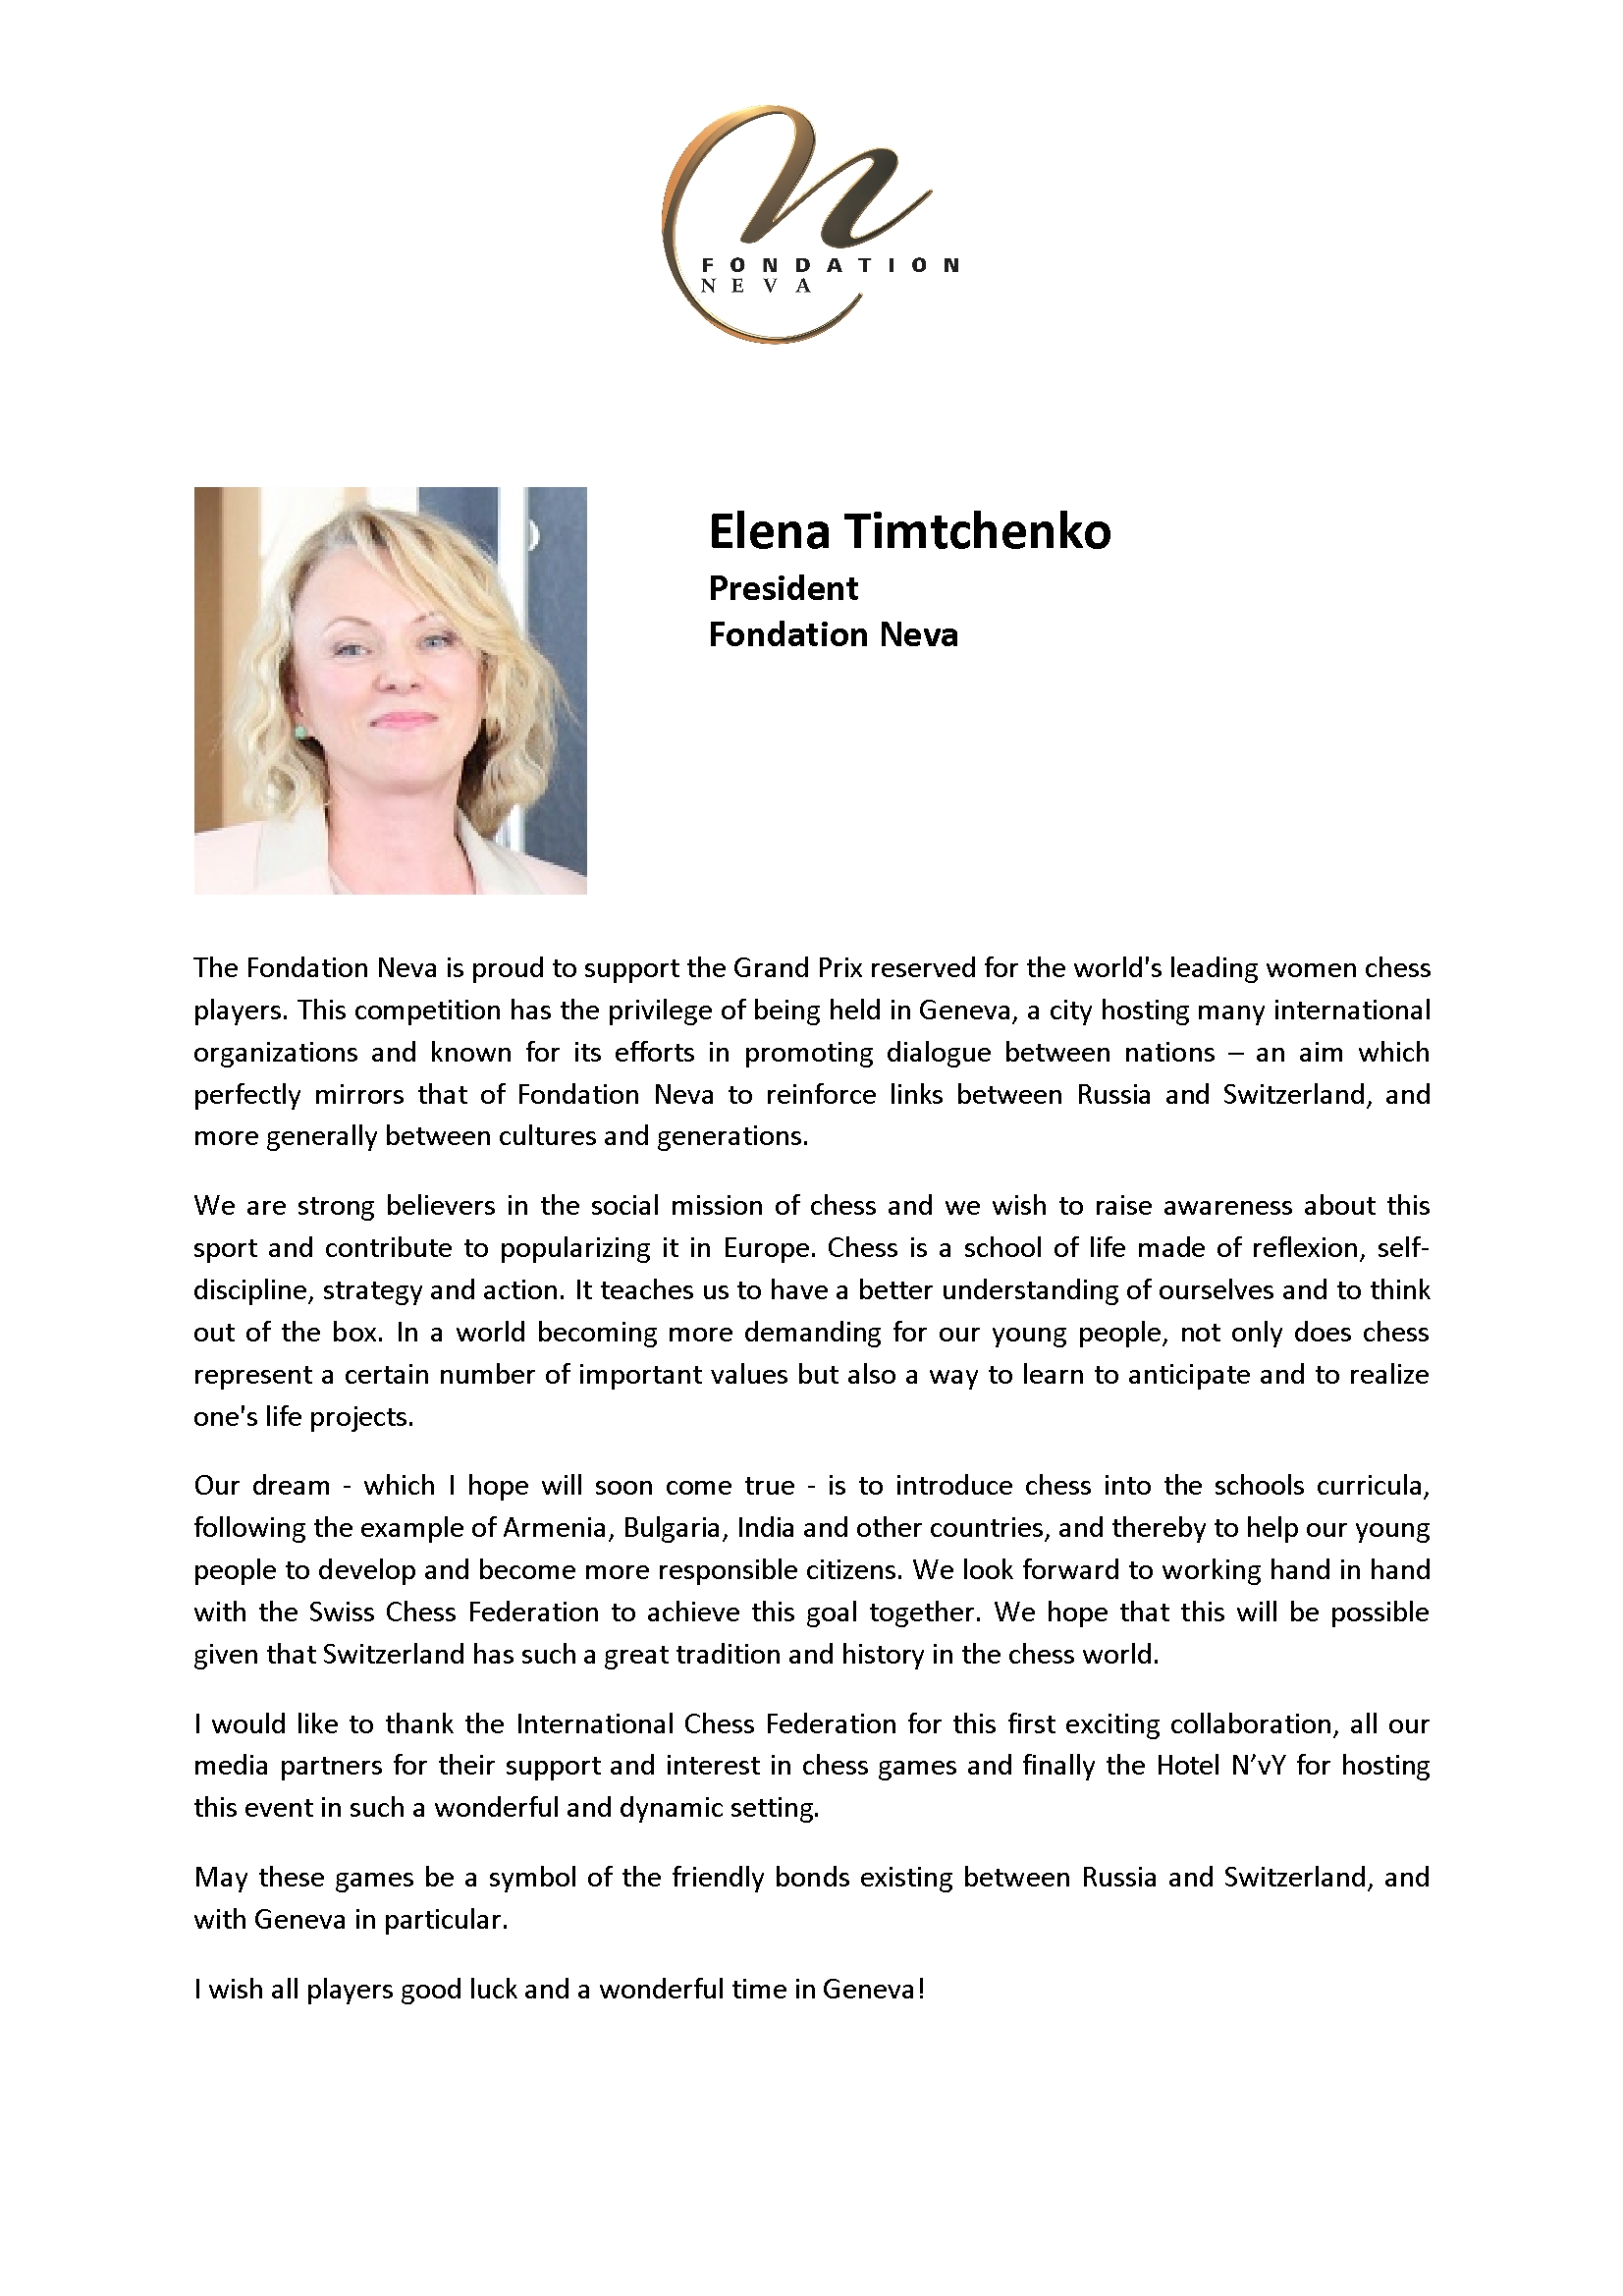 Welcome letter Elena Timtchenko3 Women Chess